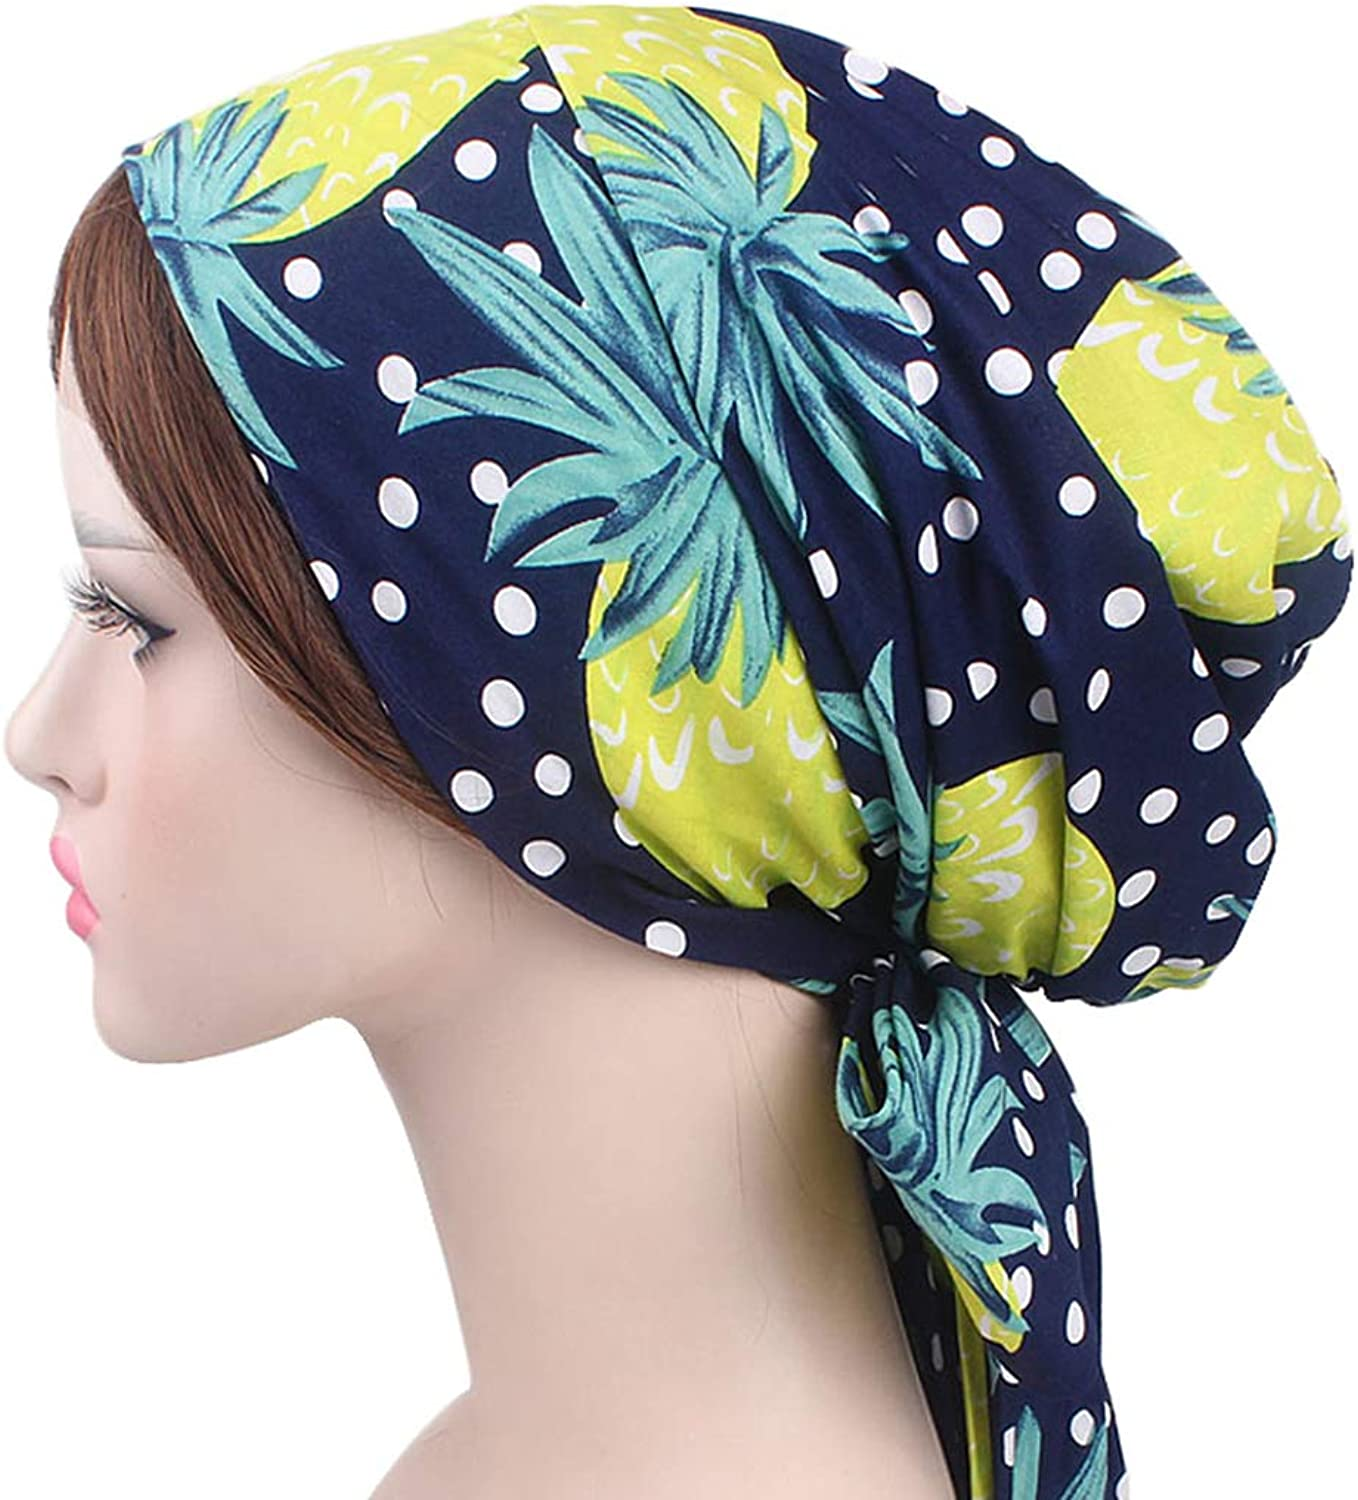 DancMolly Multipurpose Headwear Cotton Head Scarf Bowknot Chemo Caps for Cancer Hair Lose